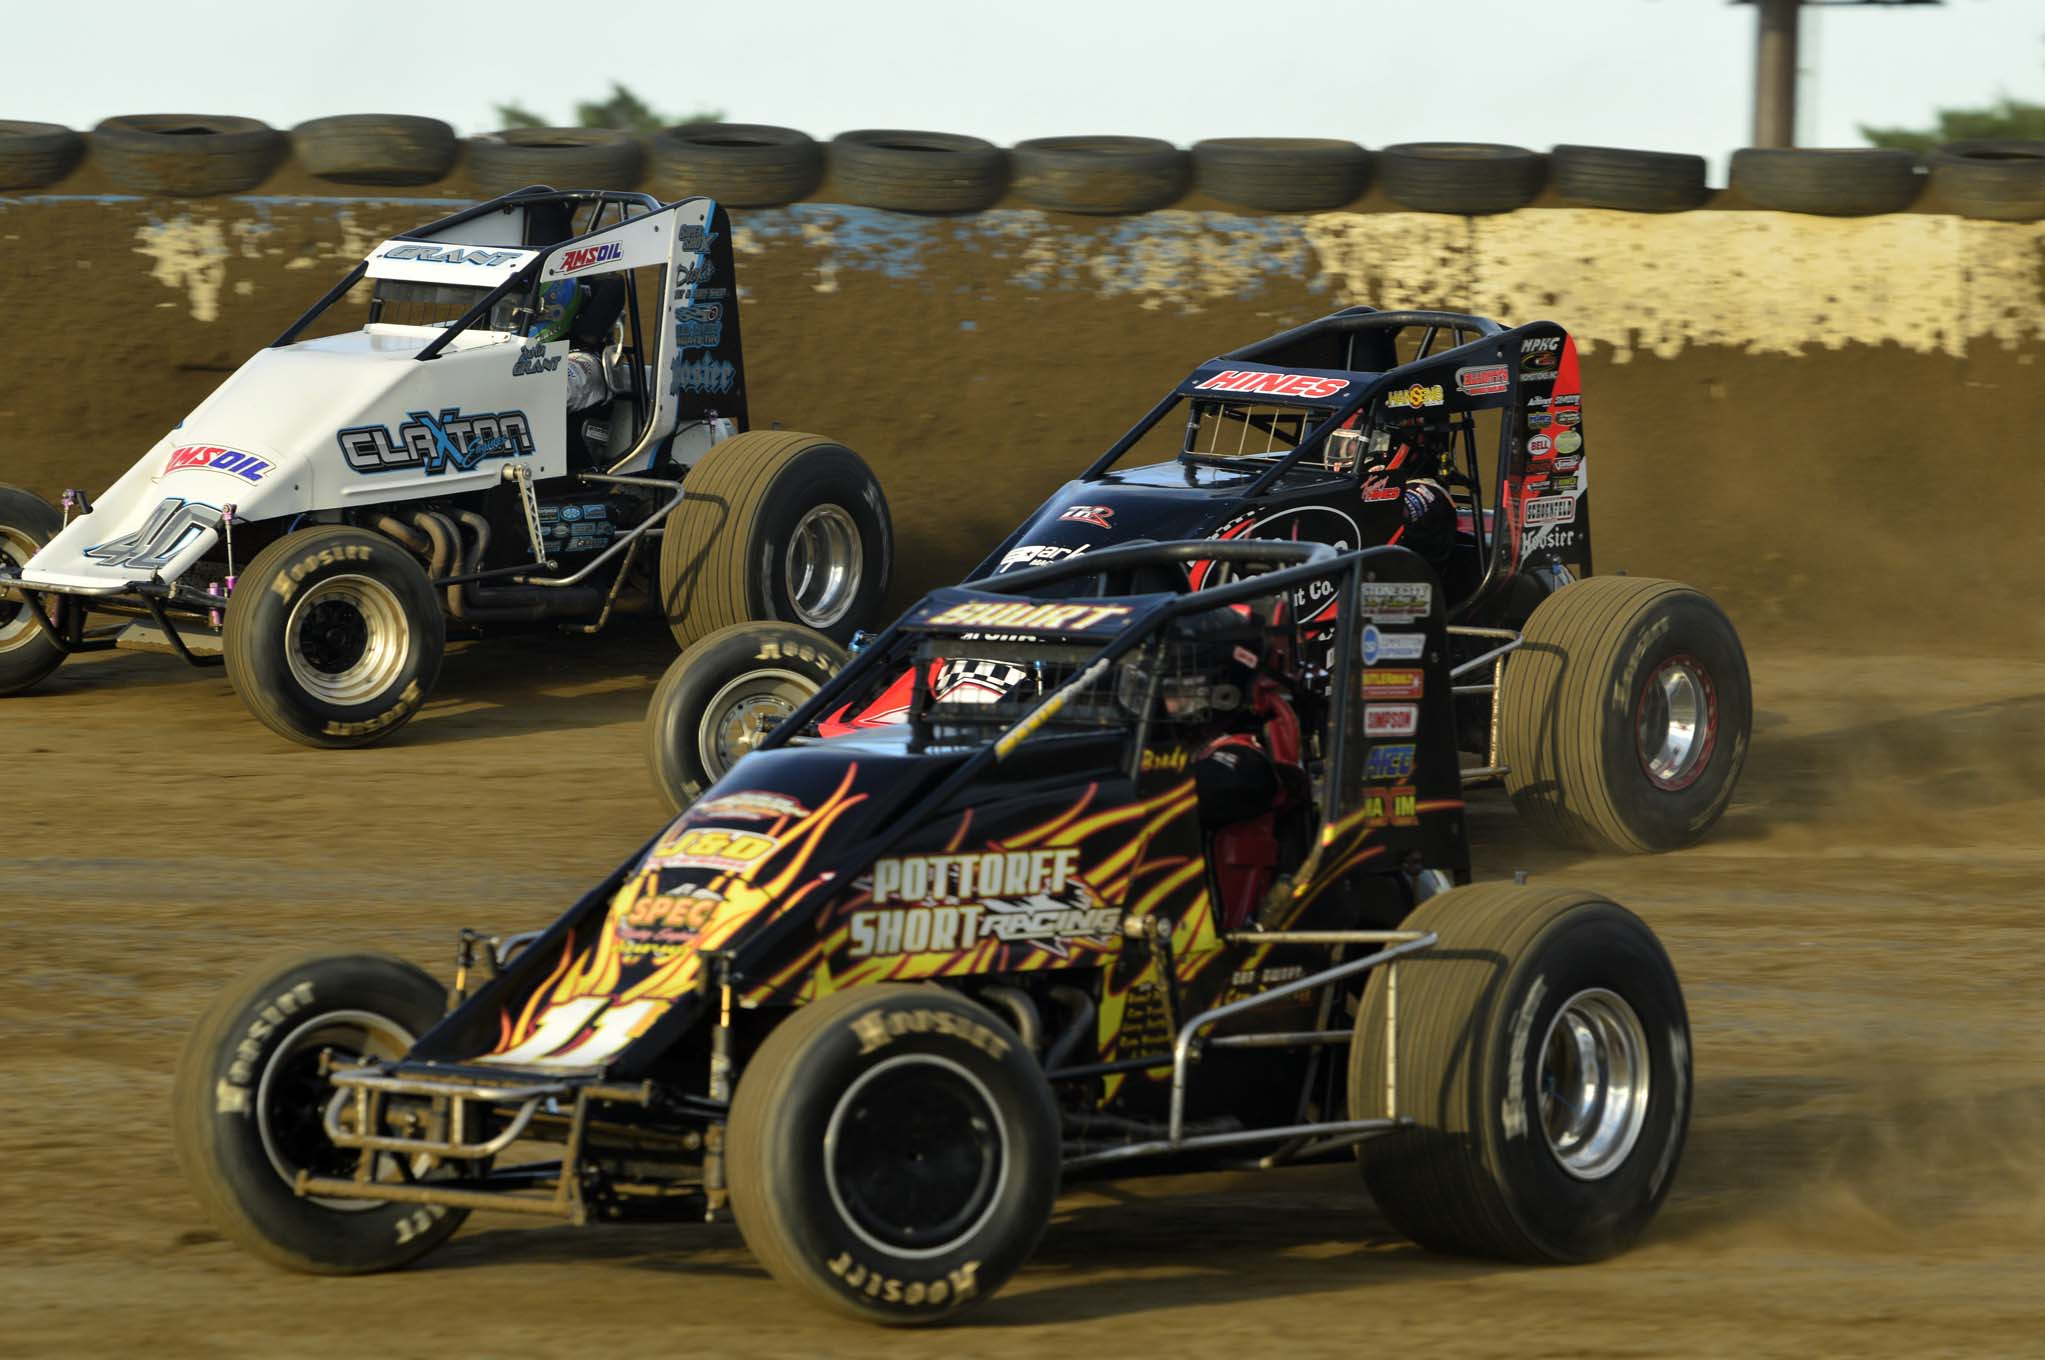 There is no shortage of action on the smaller tracks for USAC. Teams seem to prefer the smaller dirt tracks as they tend to be easier on equipment.